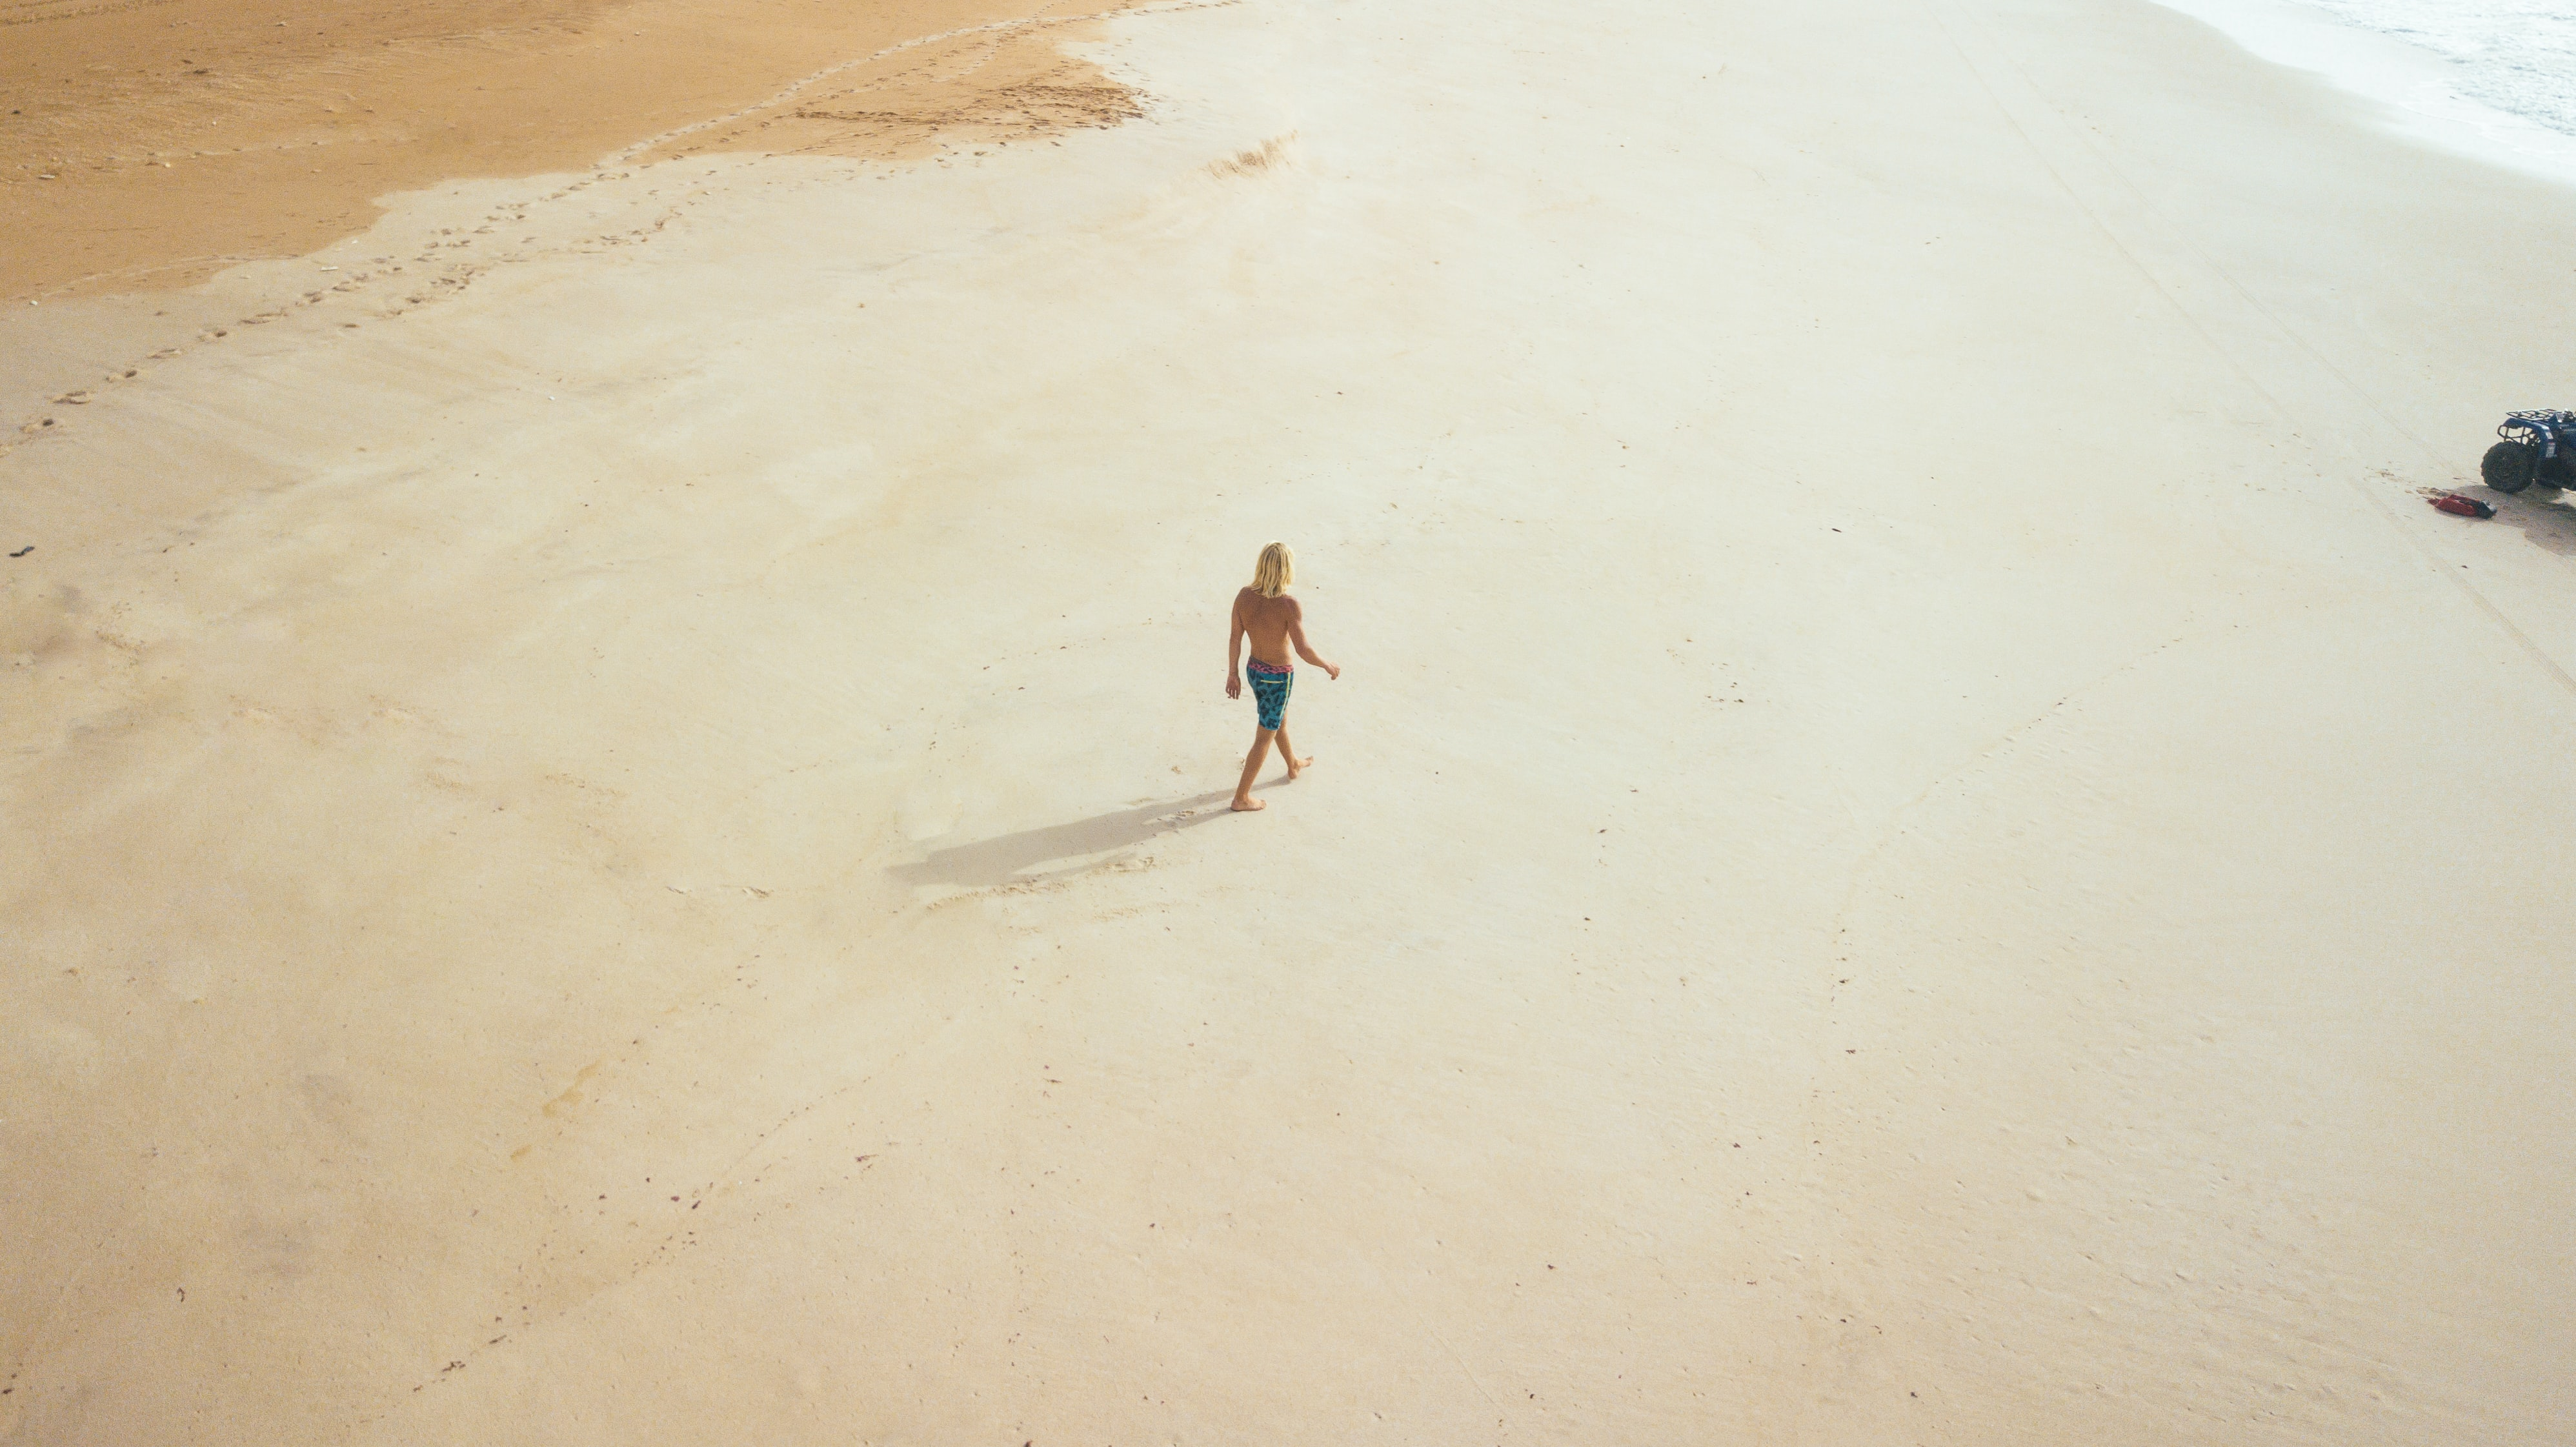 A high-angle shot of a person walking along an empty beach on a sunny day